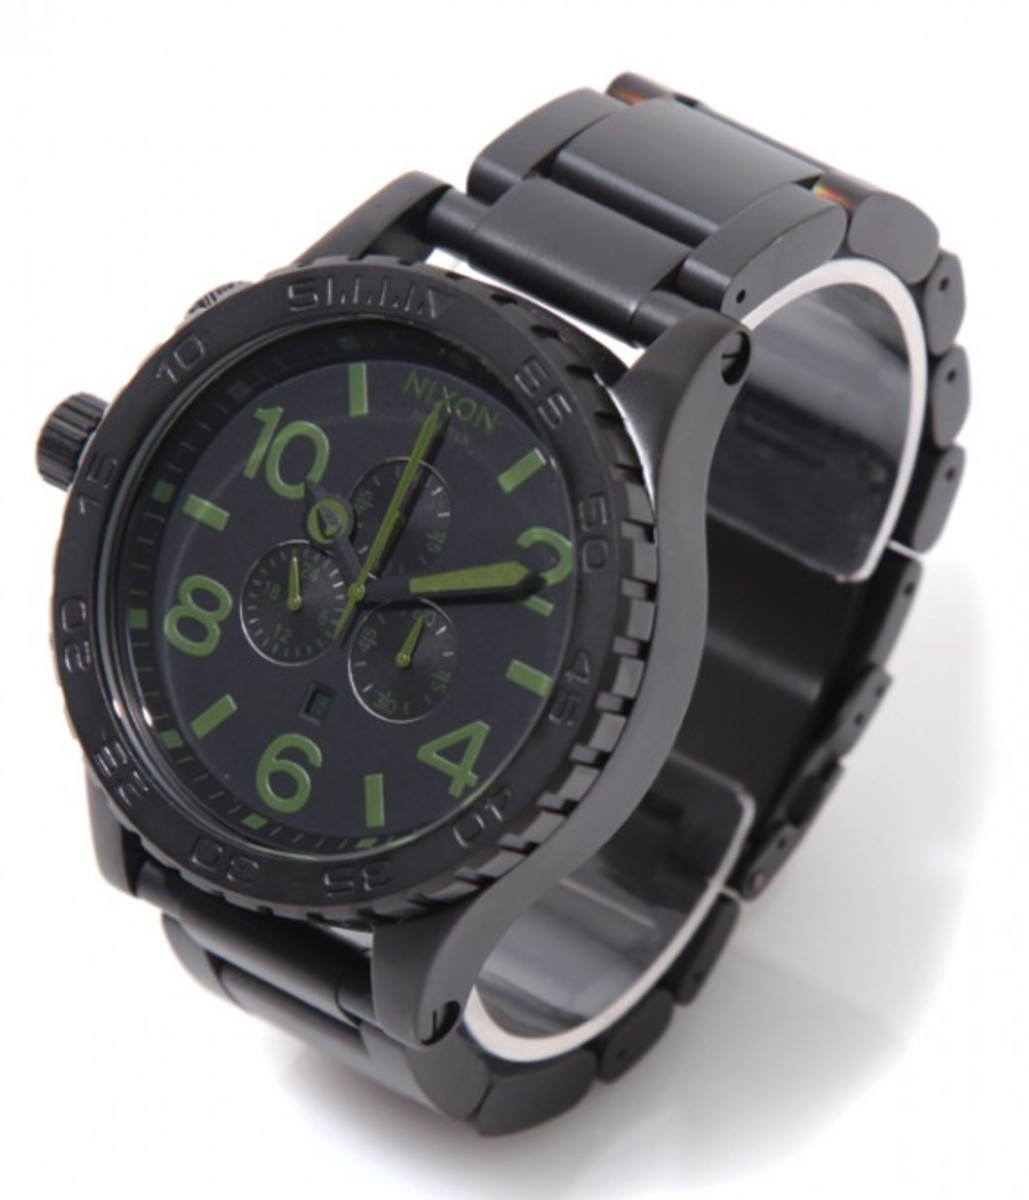 51-30-chrono-black-green-01